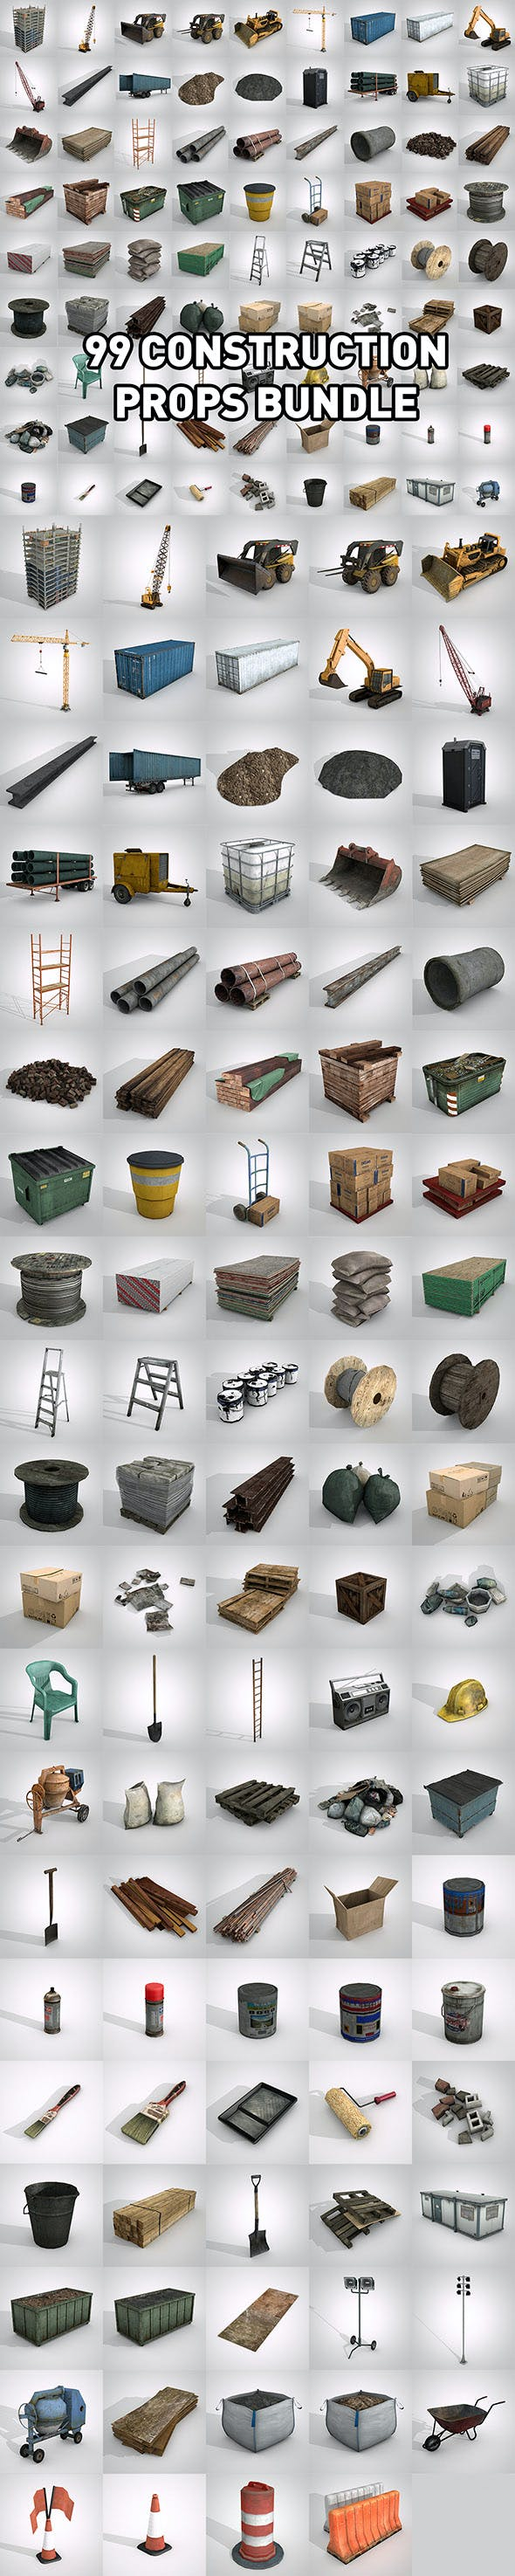 99 Construction Props Bundle - 3DOcean Item for Sale